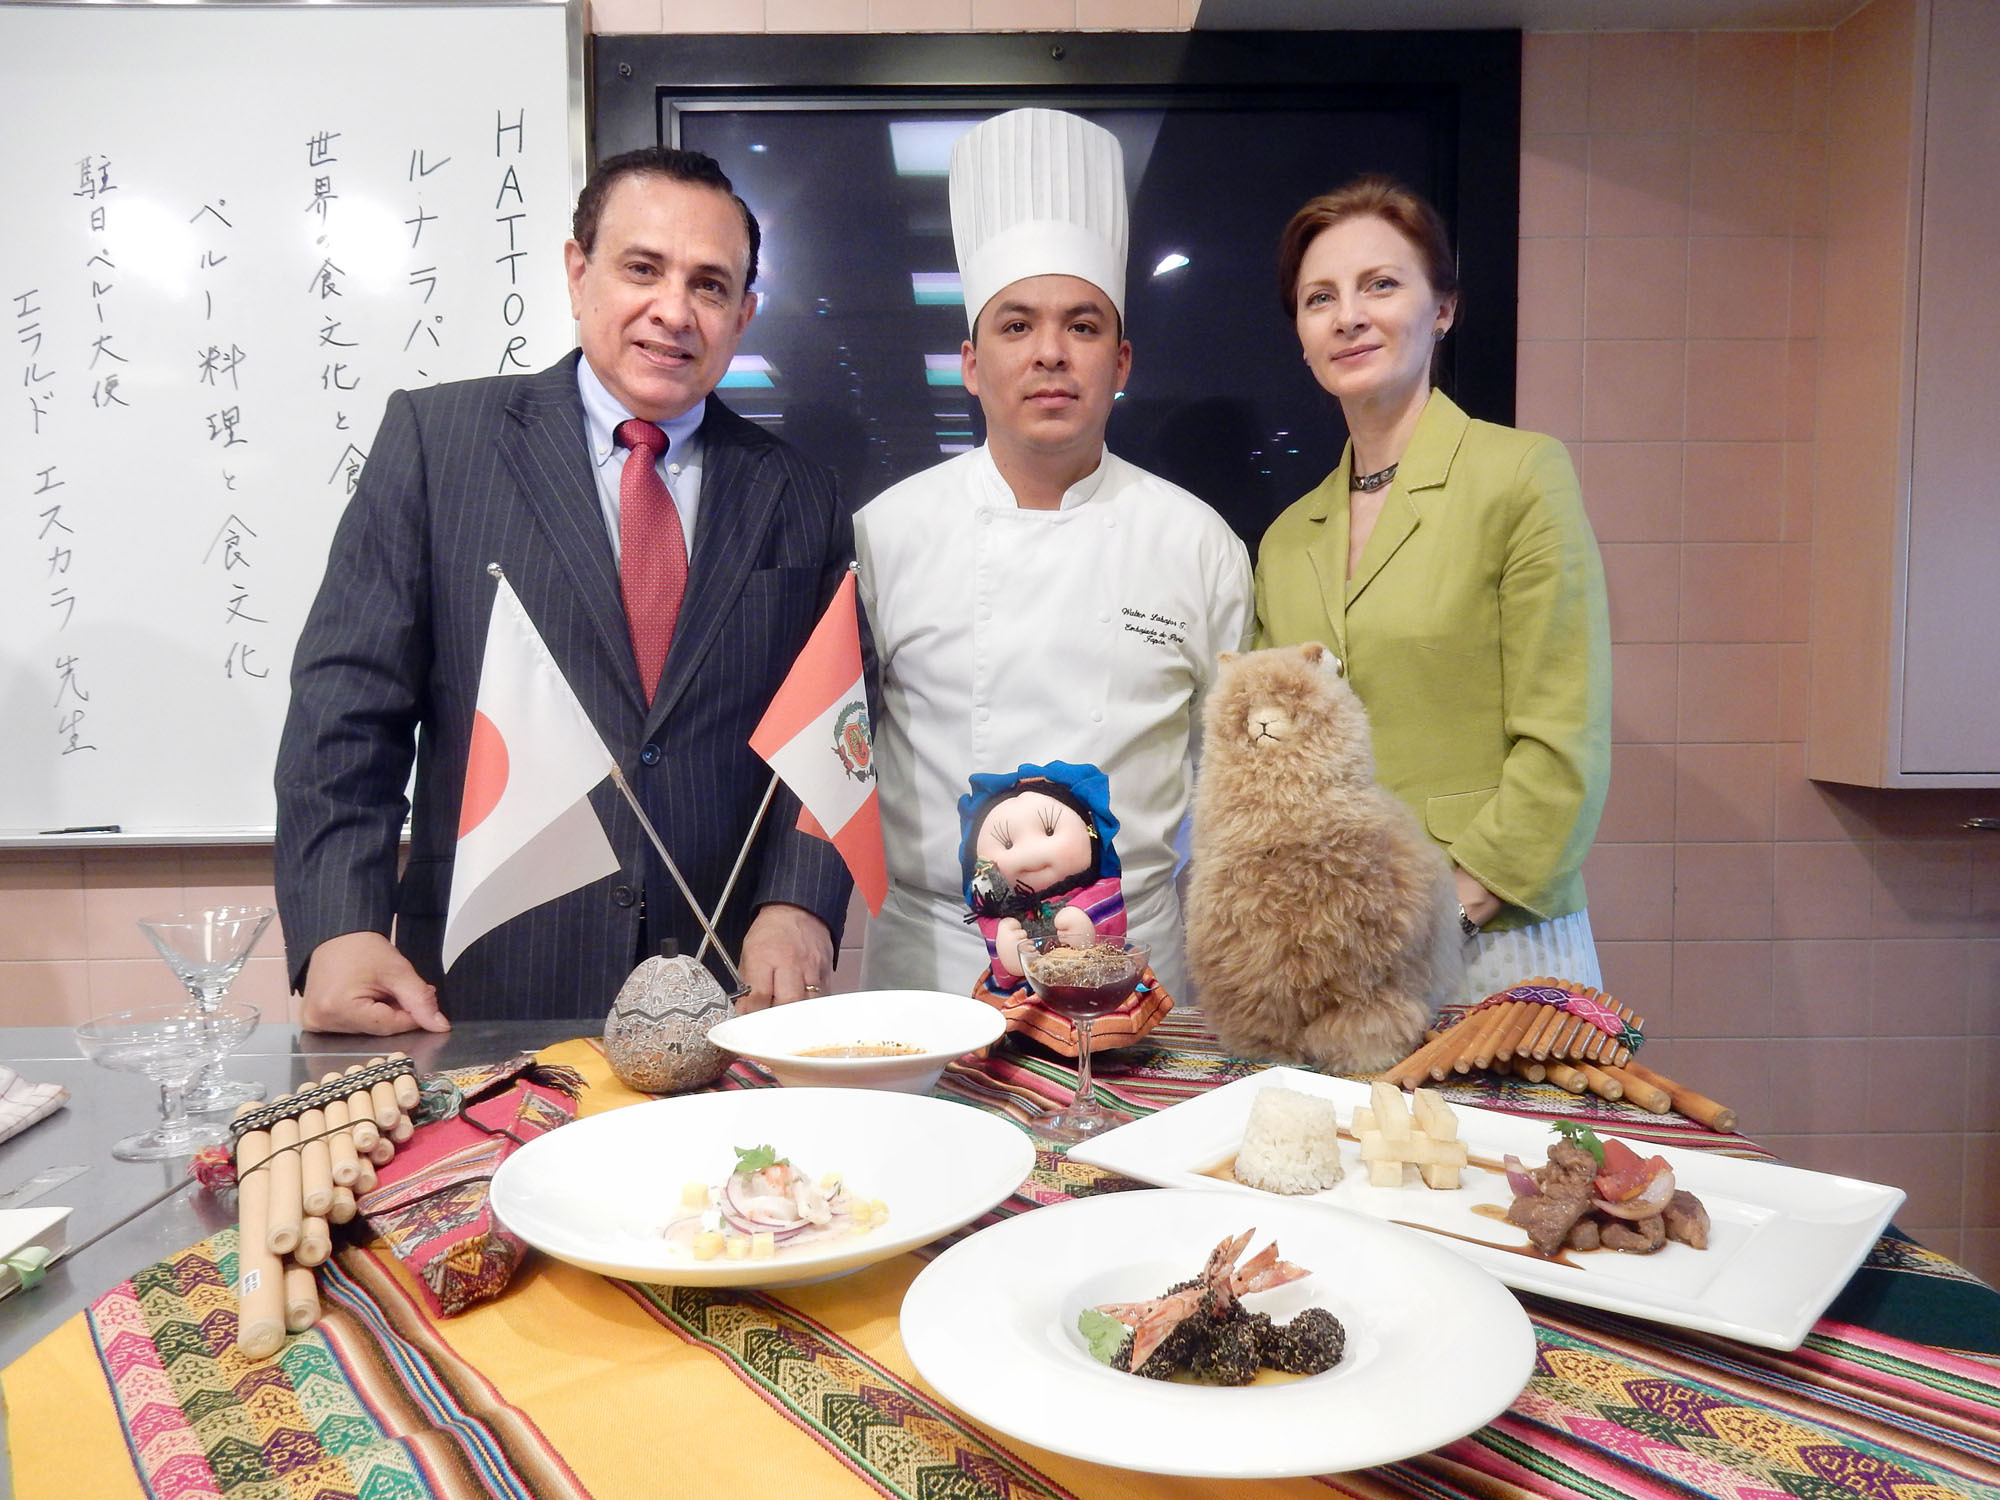 Peruvian Ambassador Elard Escala (left) poses with his wife Cristina and embassy chef Walter Labajos during a Peruvian culinary lesson at the Hattori Nutrition College in Tokyo on June 4. | MAKI YAMAMOTO-ARAKAWA